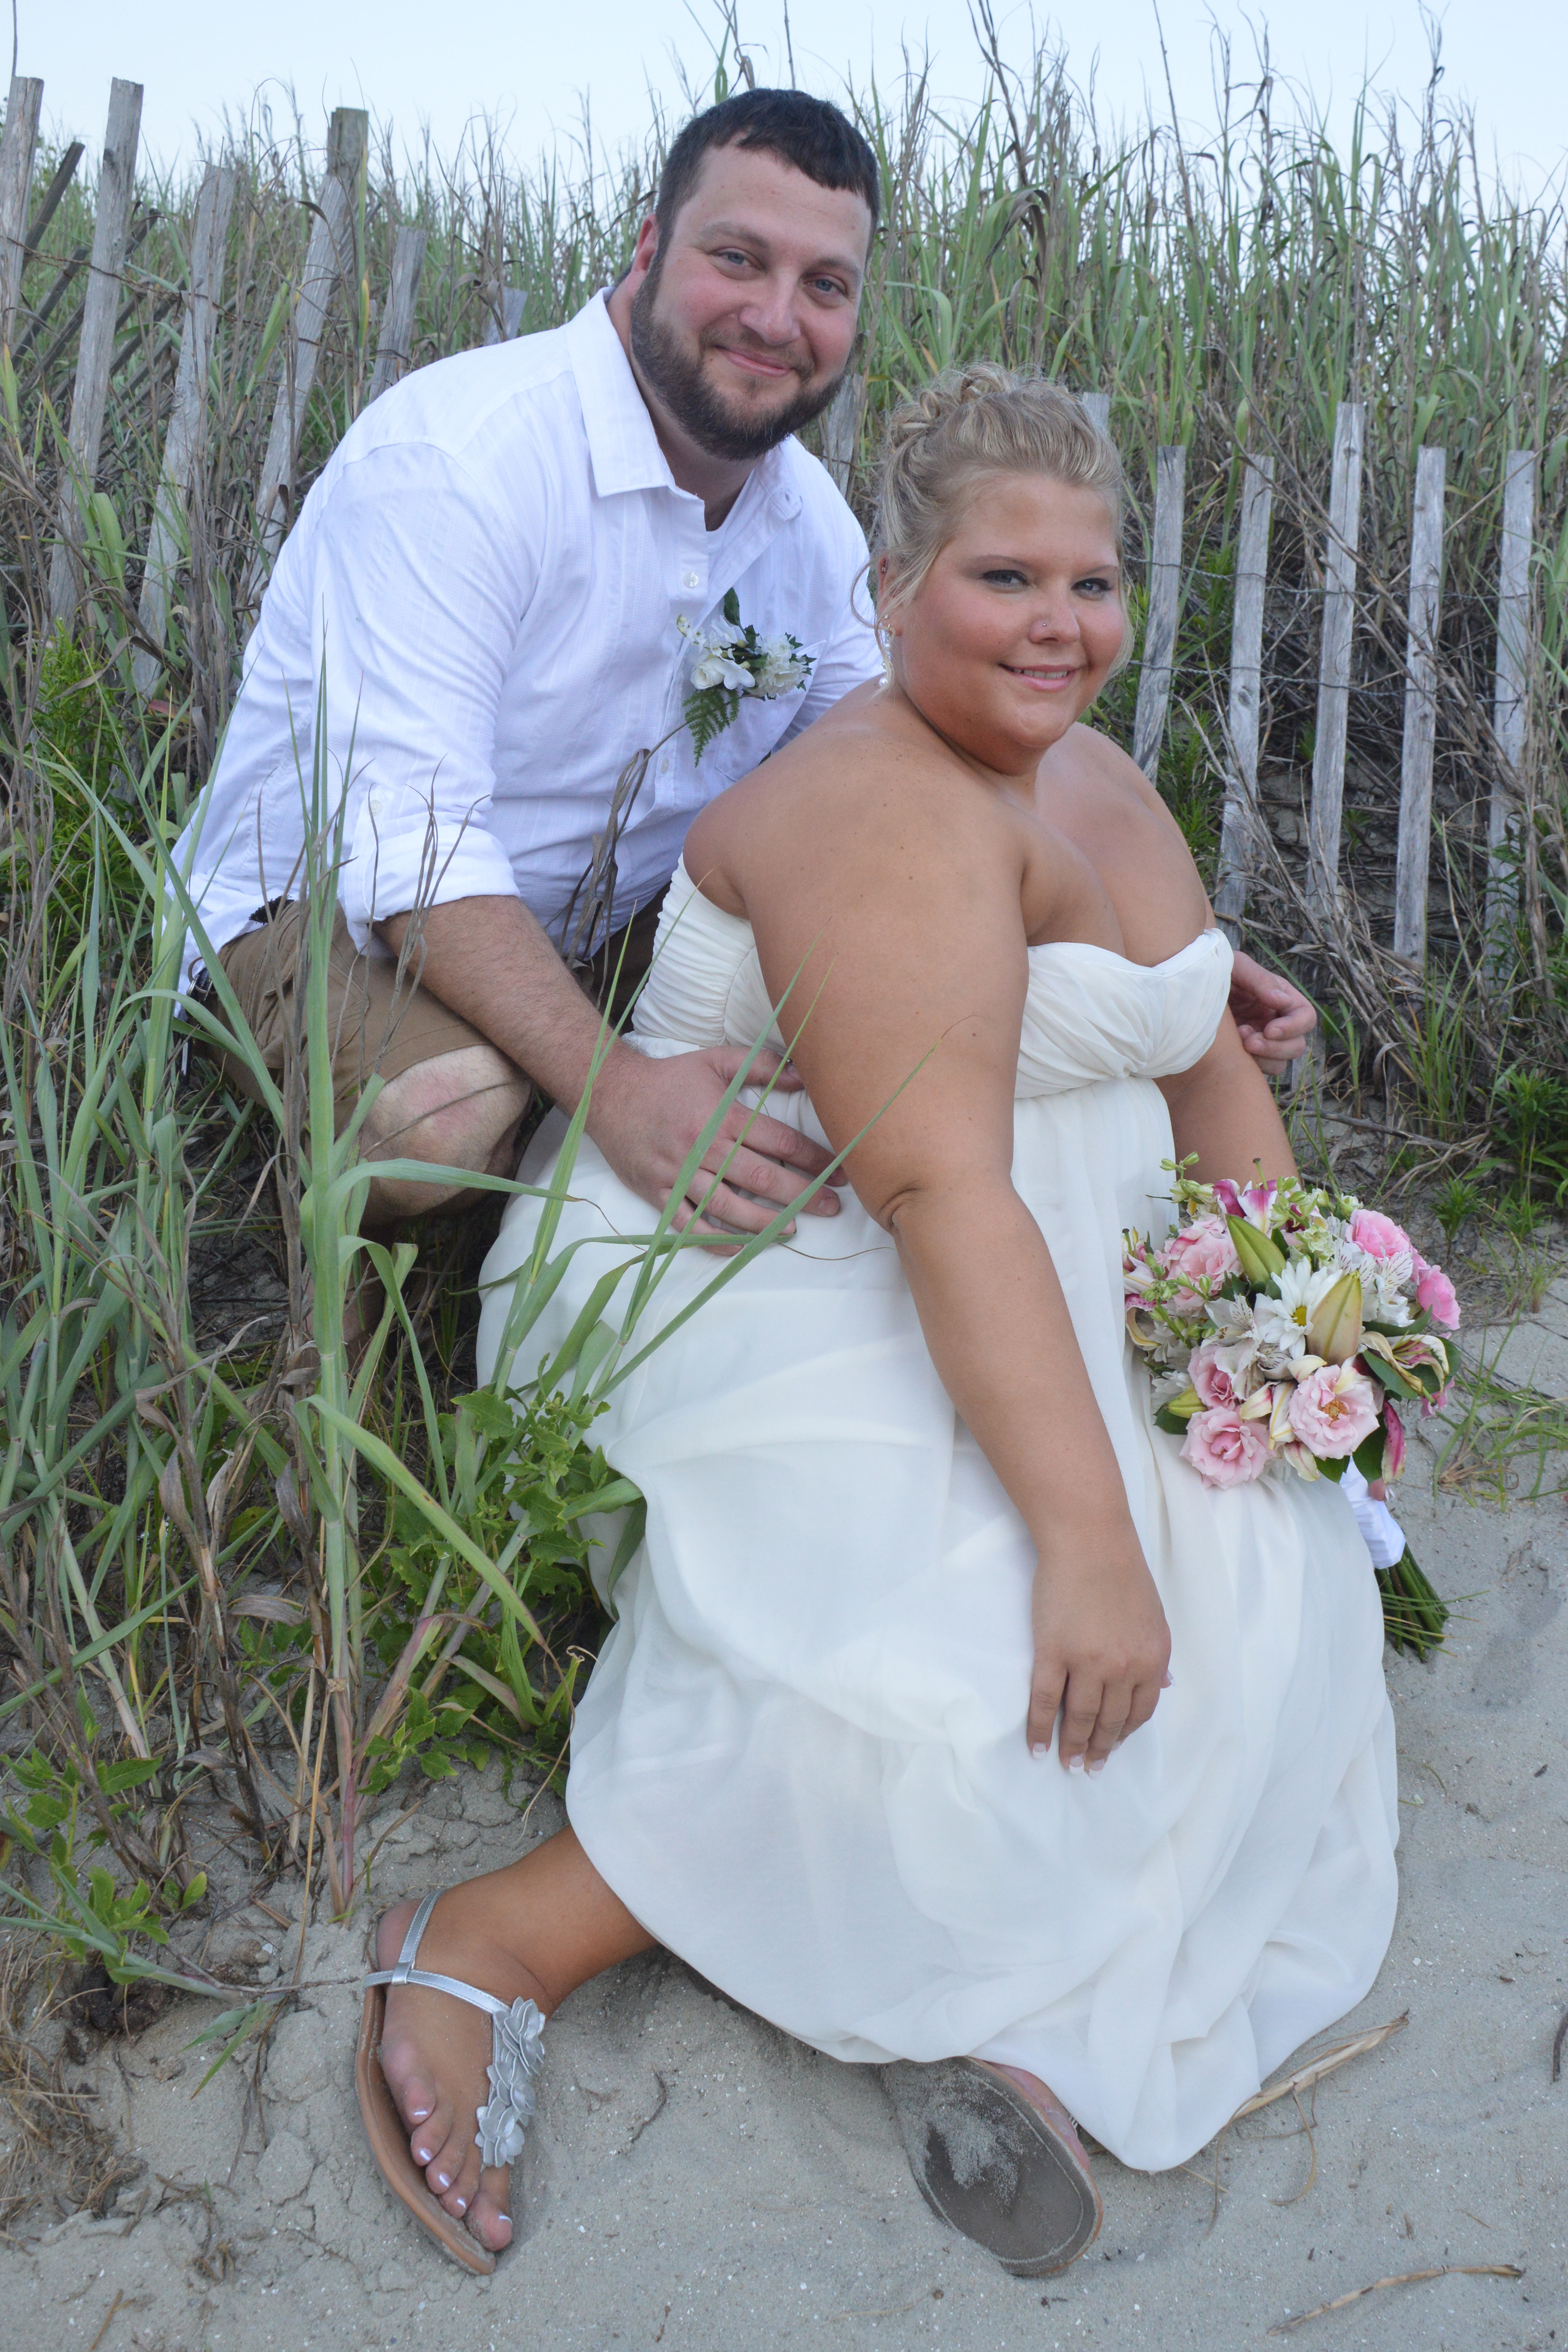 North Carolina And Robert Franklin Higgins Of Boone Were United In Marriage July 4 2014 At The Beach Myrtle South